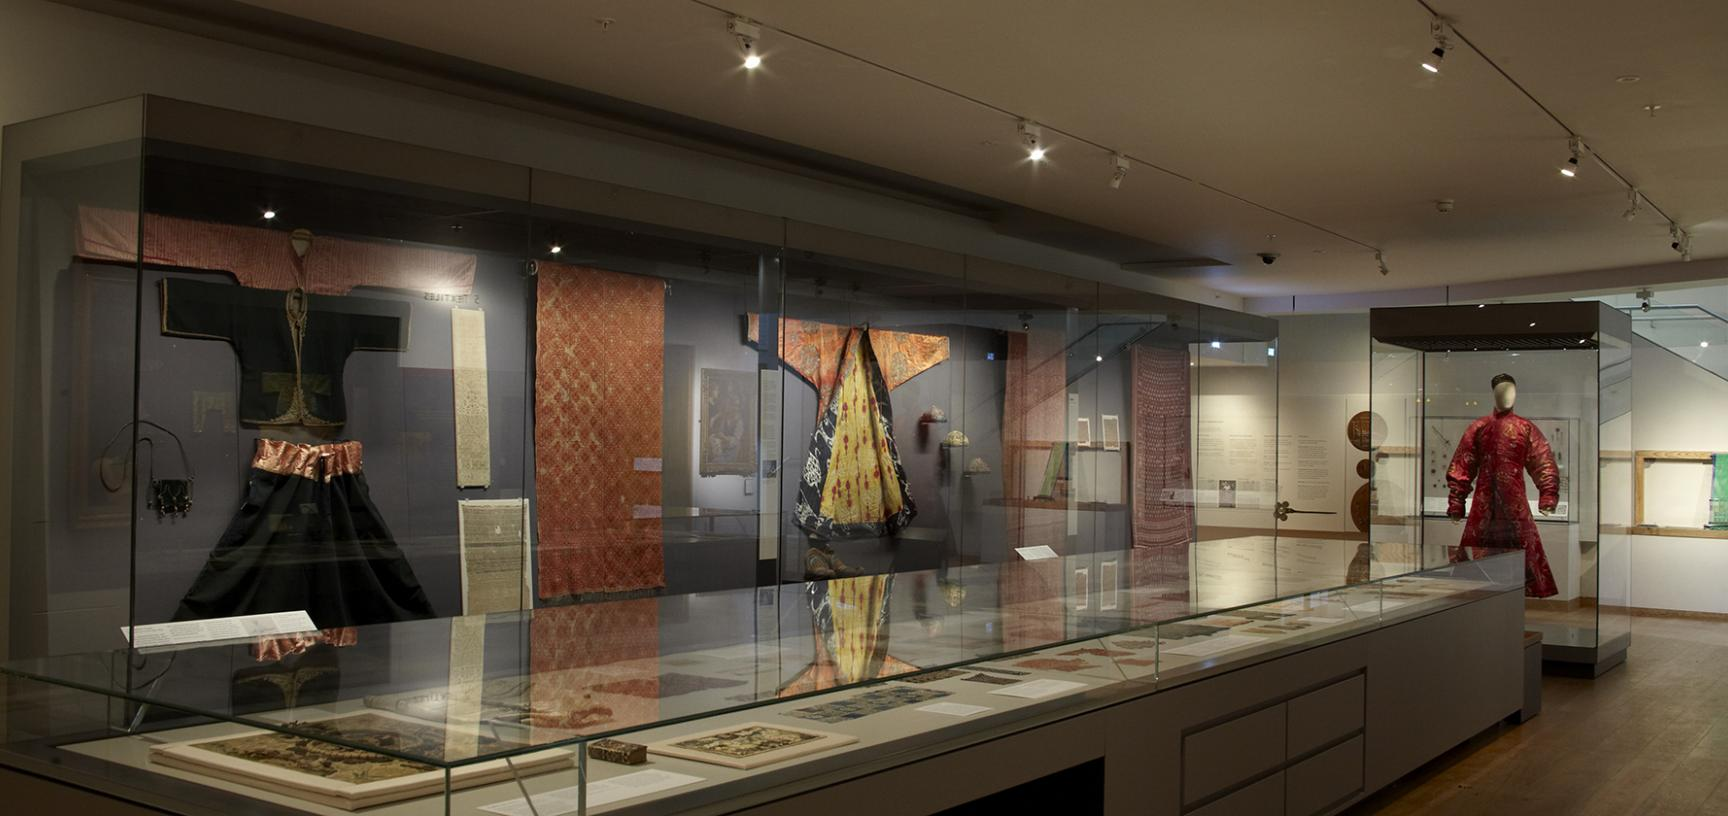 The Textiles Gallery at the Ashmolean Museum